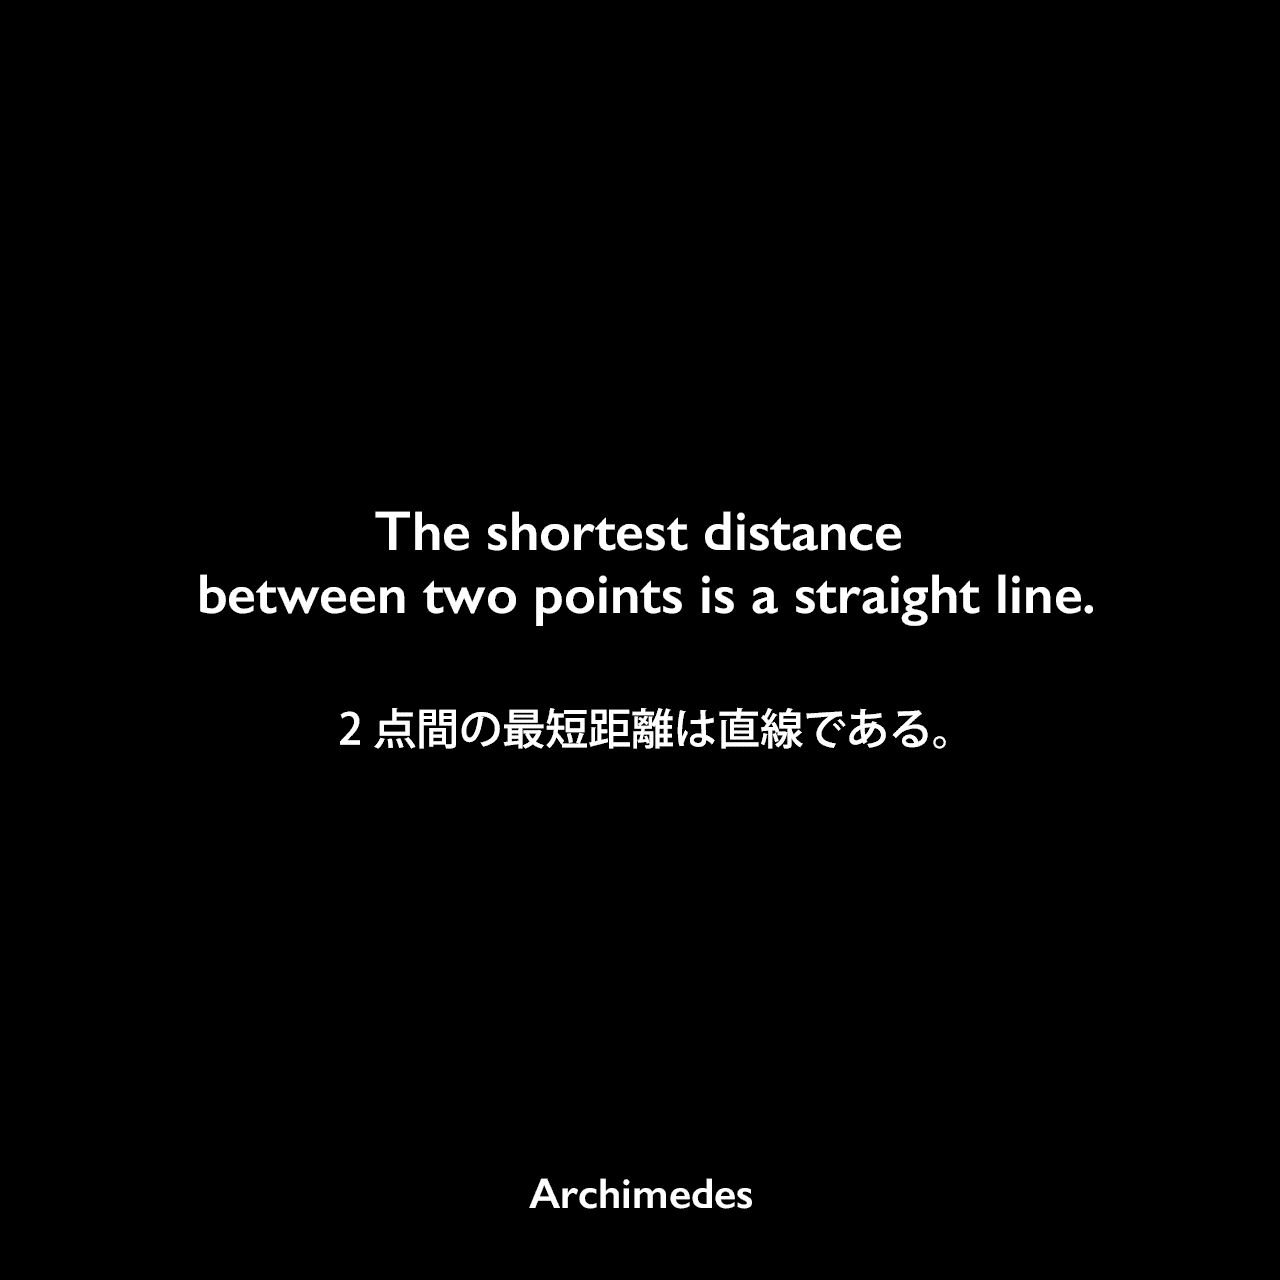 The shortest distance between two points is a straight line.2点間の最短距離は直線である。Archimedes